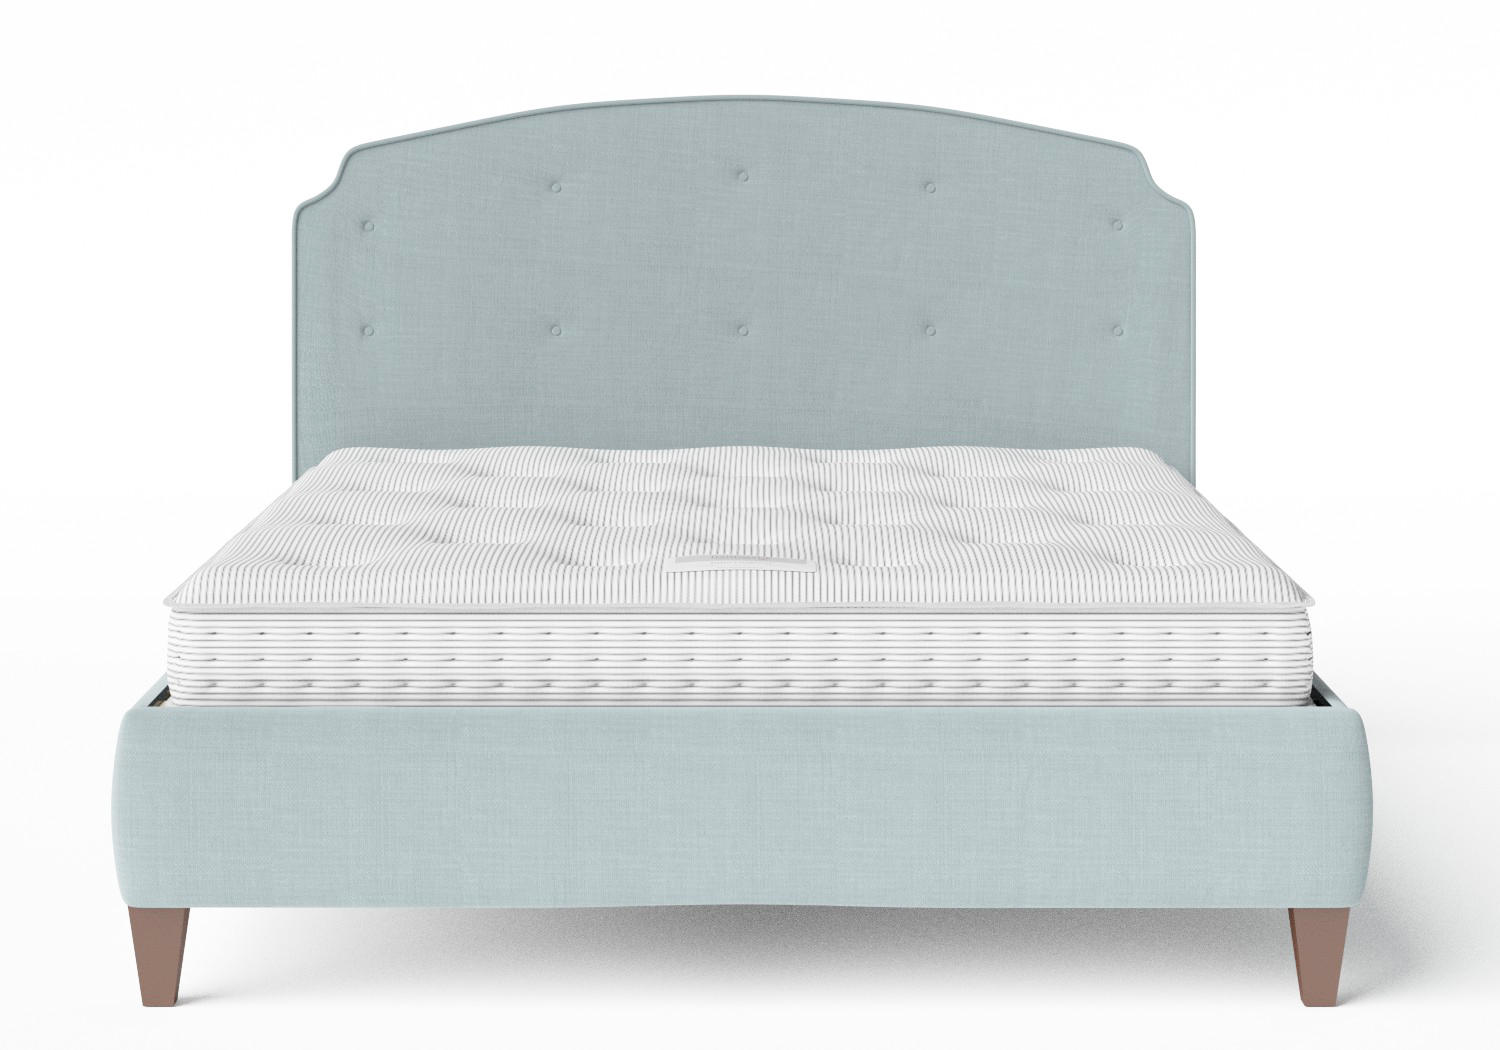 Lide Upholstered Bed in Wedgewood fabric with buttoning shown with Juno 1 mattress